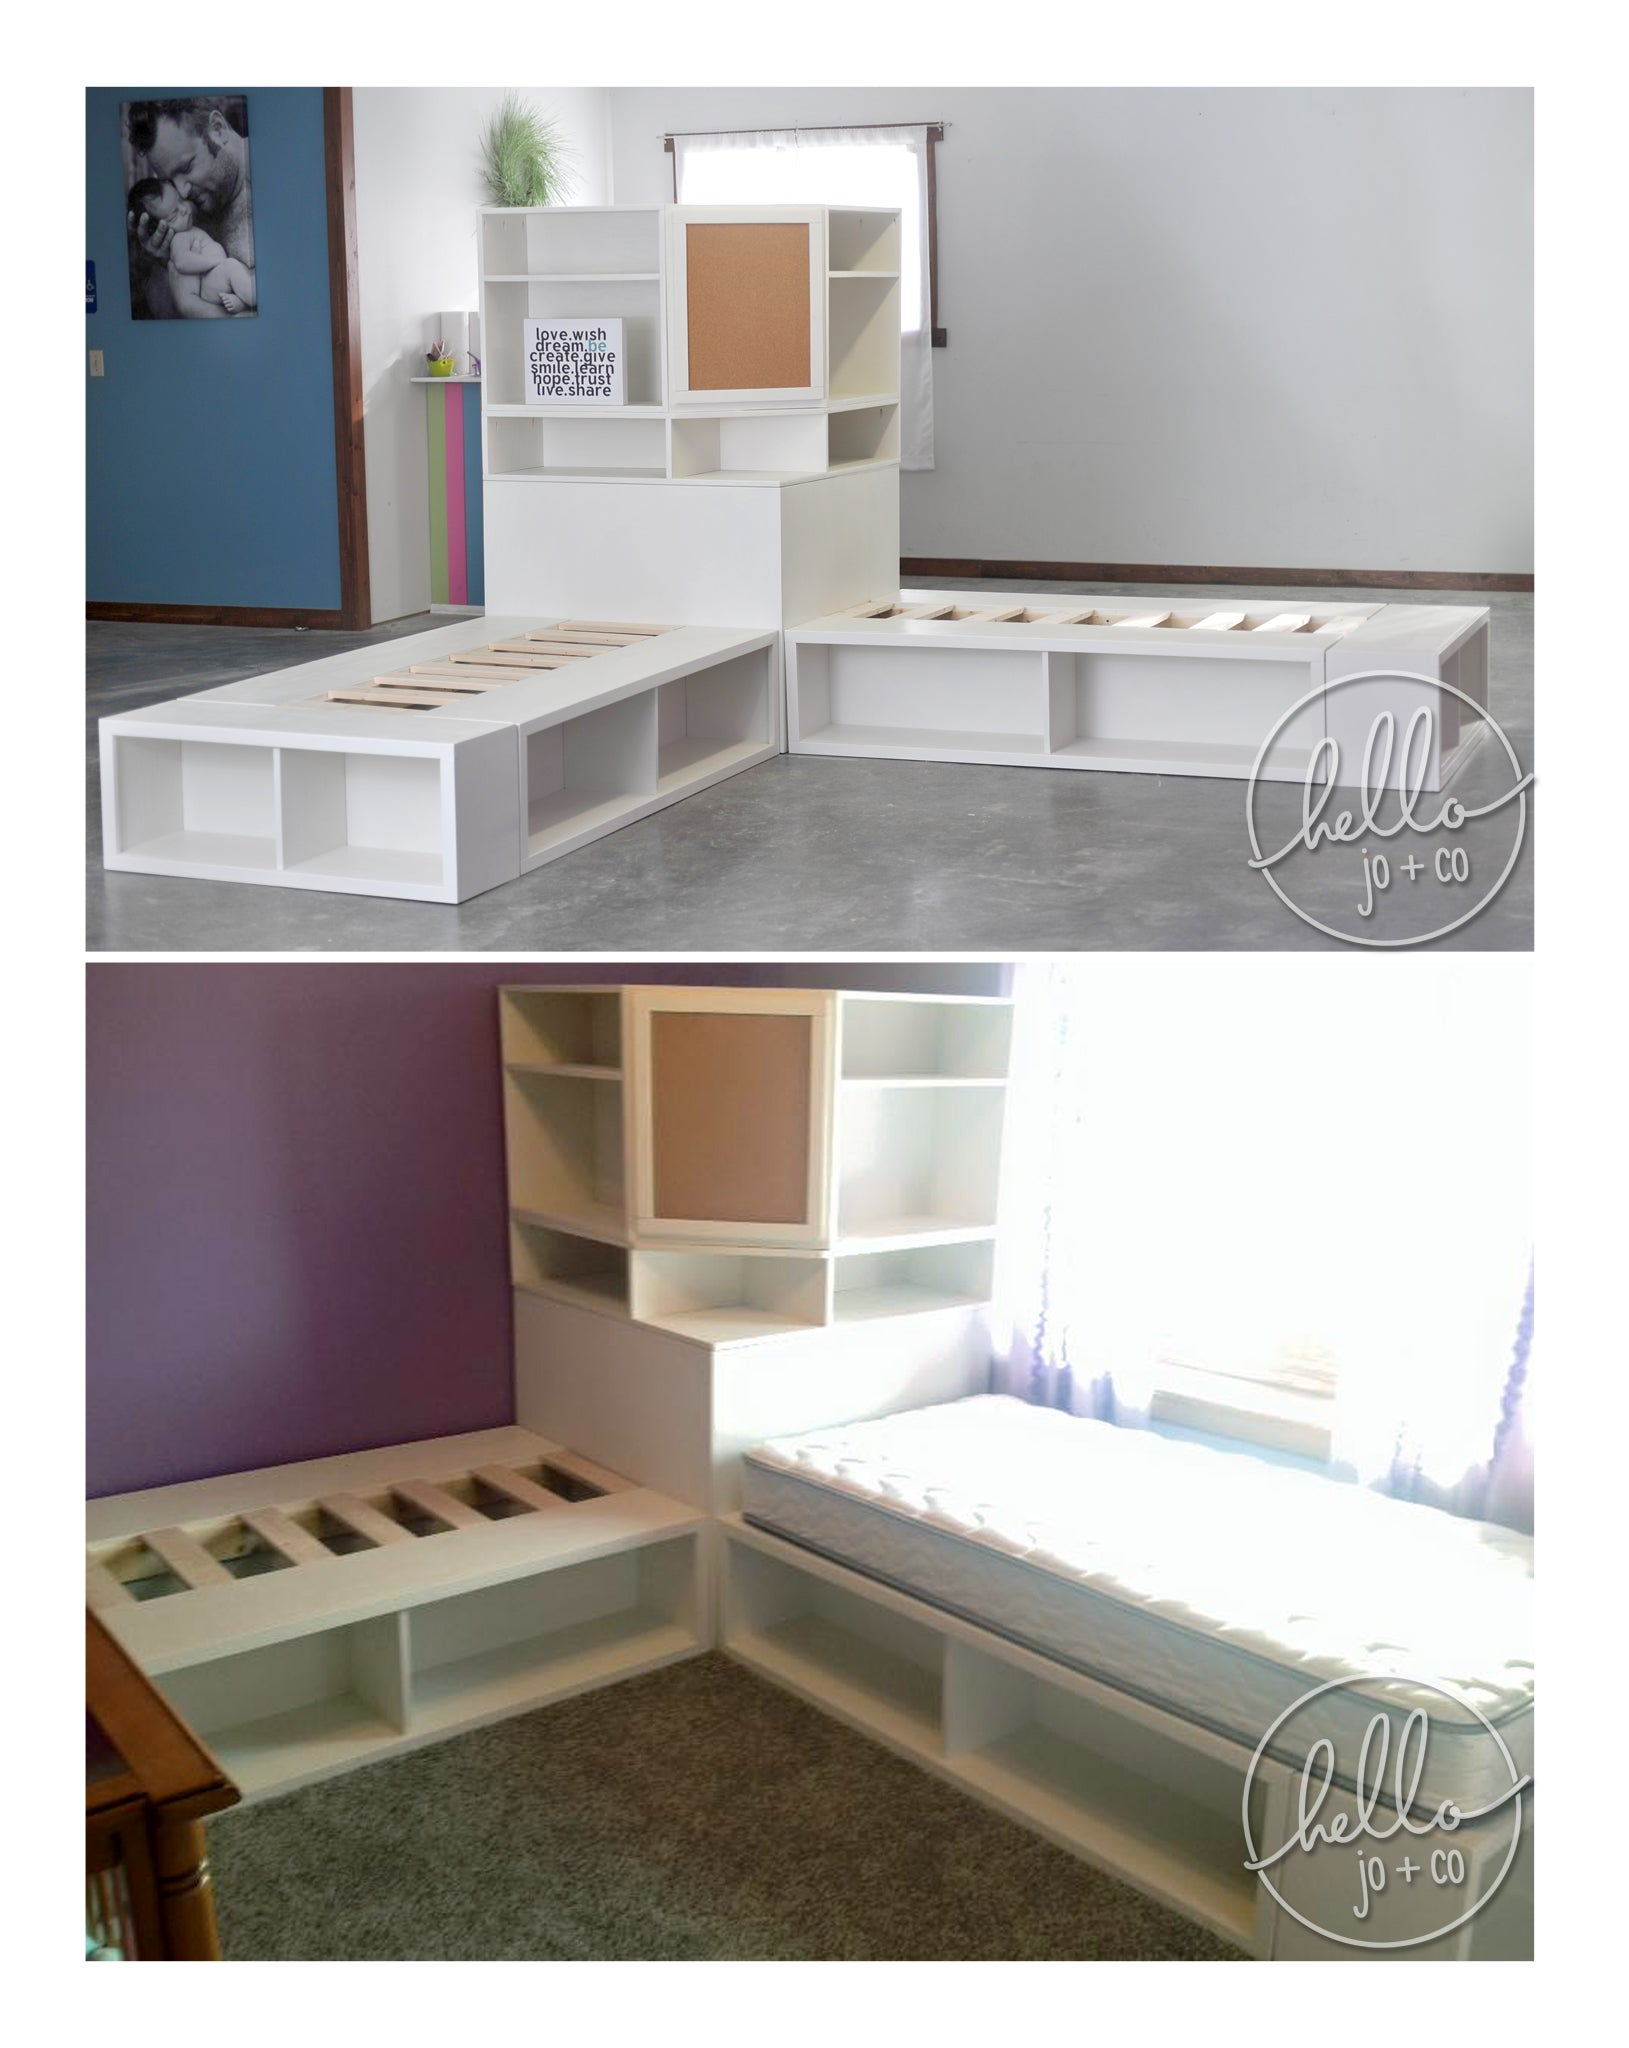 Picture of: Storage Bed With Corner Hutch Hello Jo Co